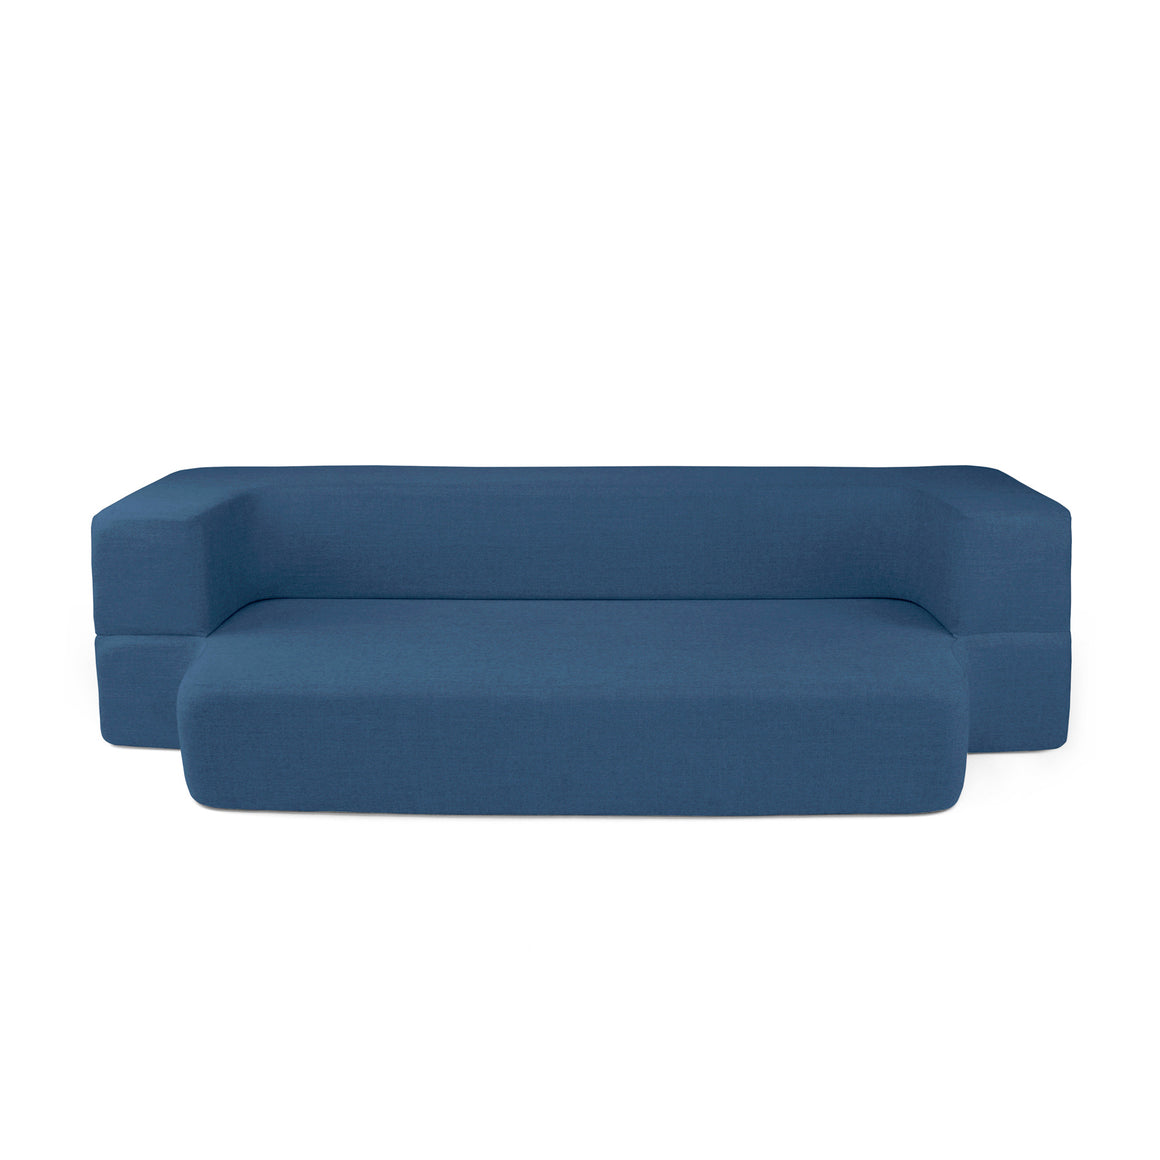 Blue CouchBed